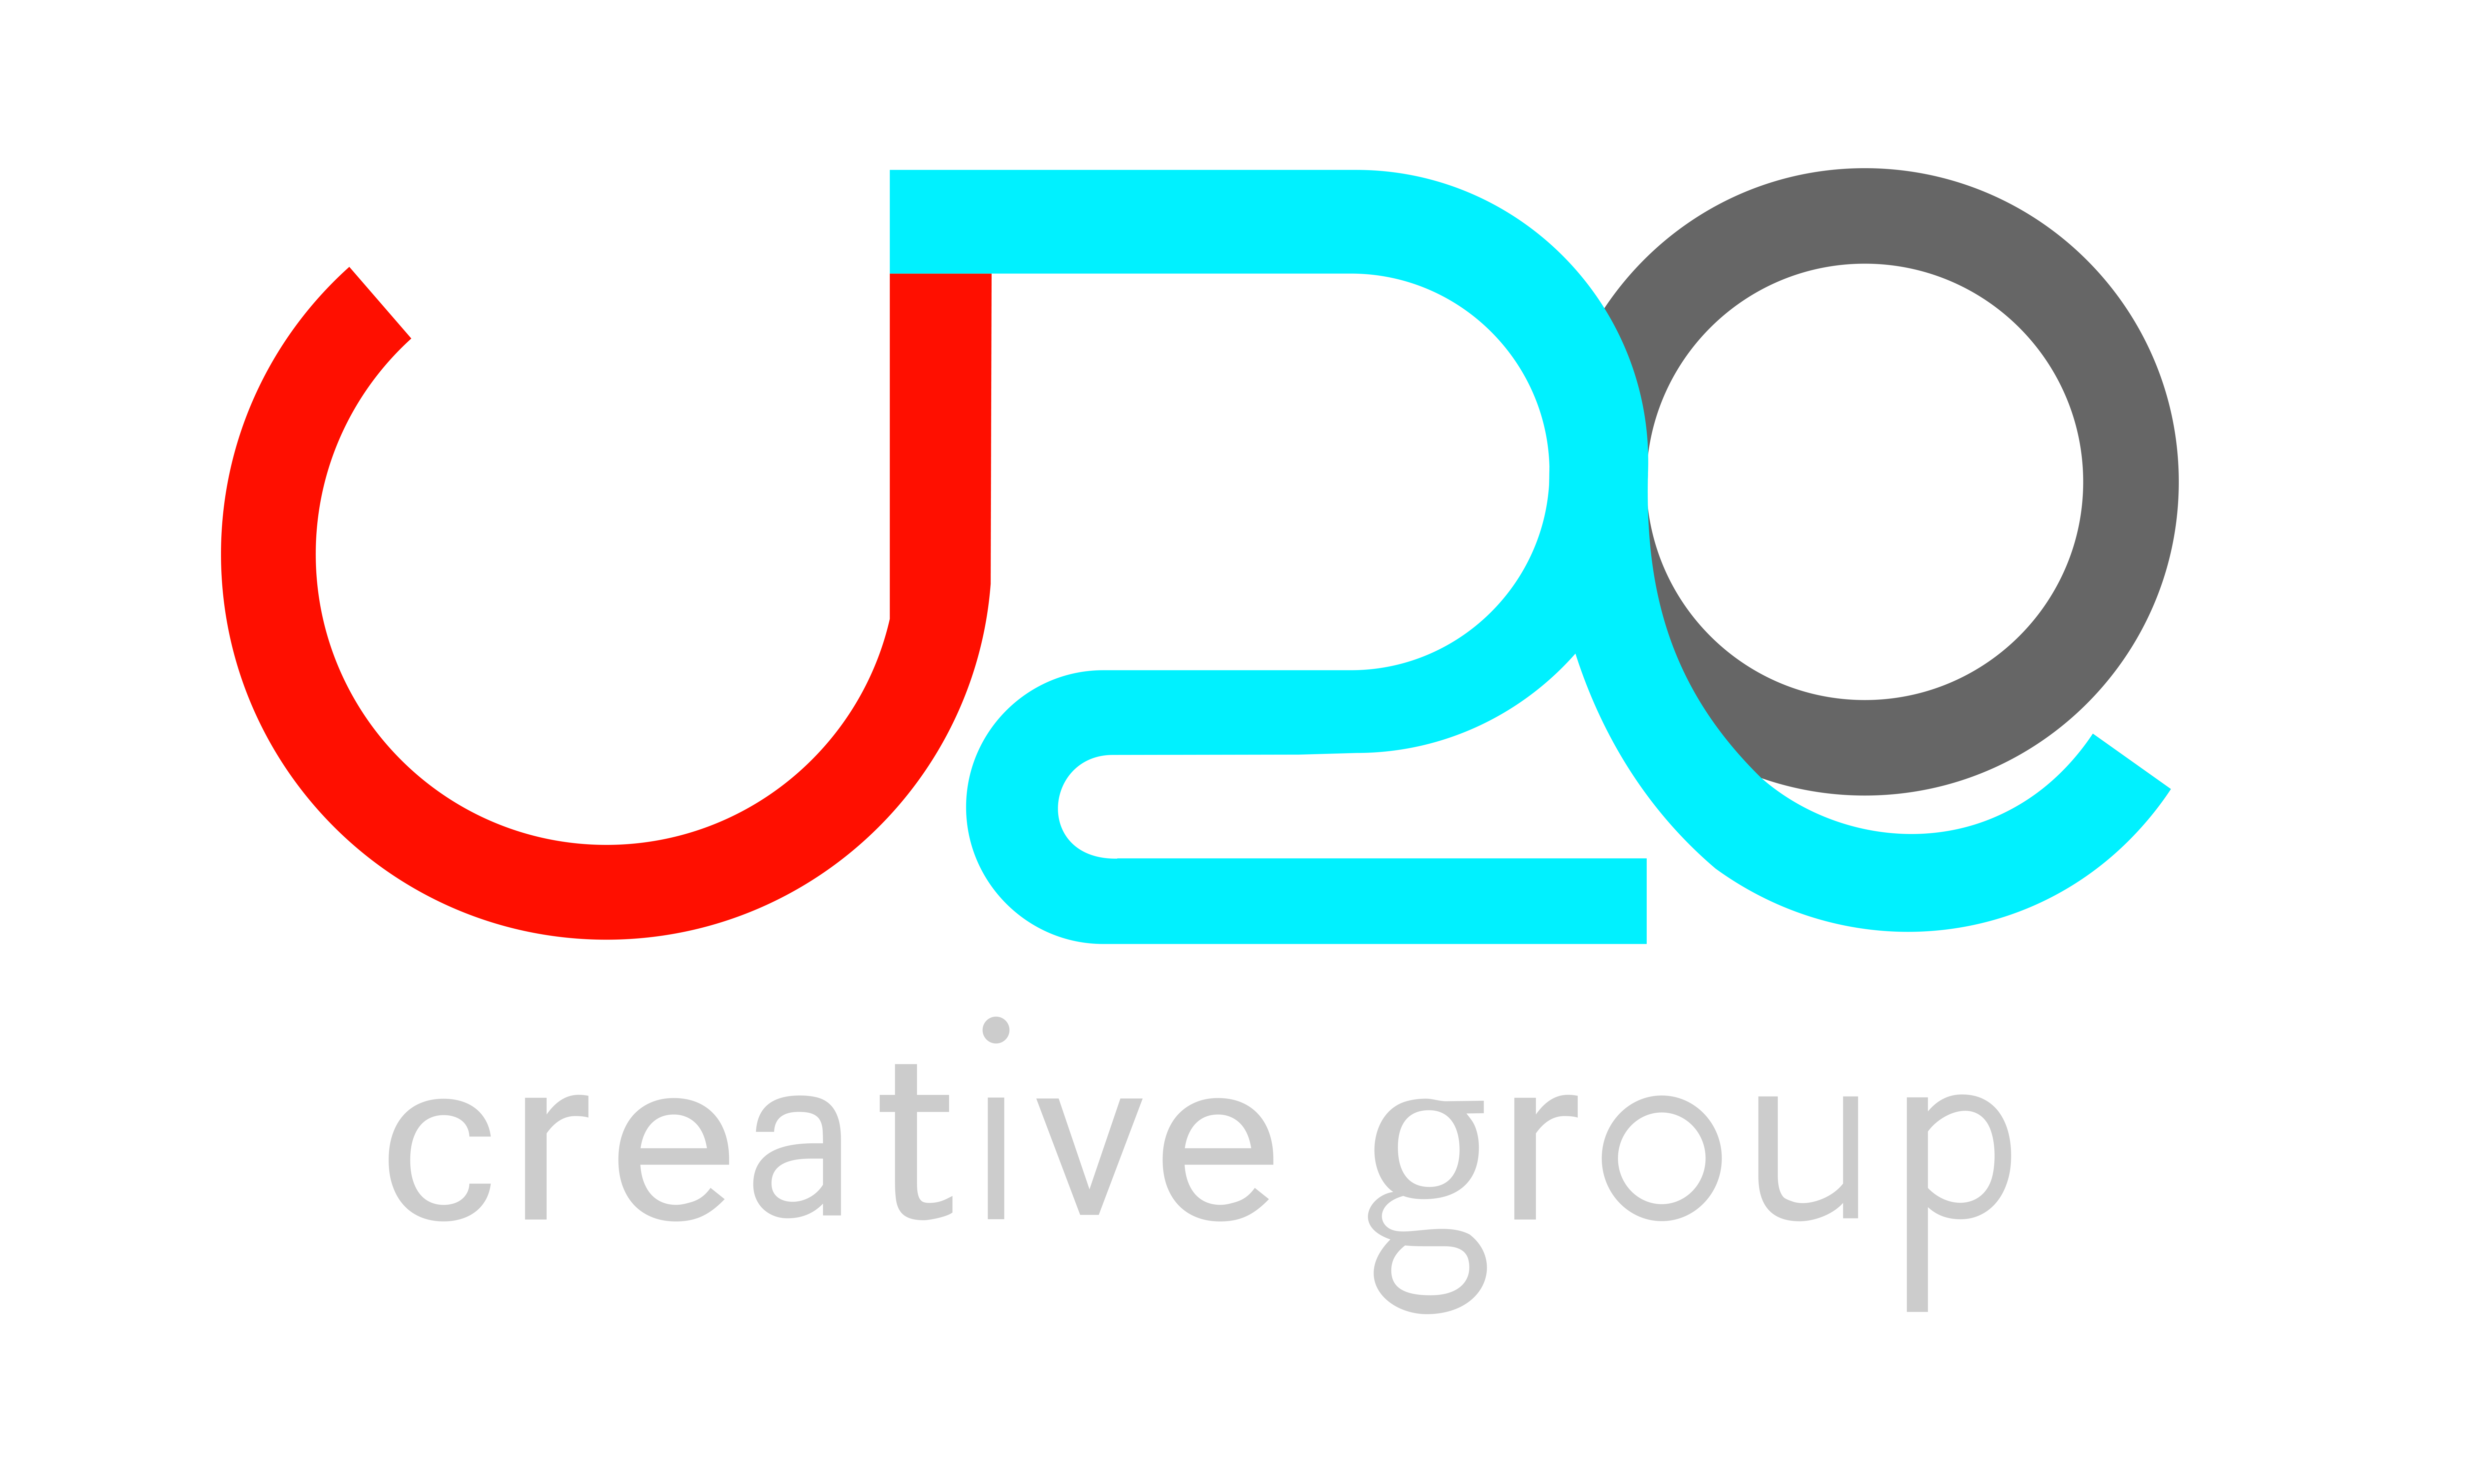 J group a full. Number 1 clipart creative